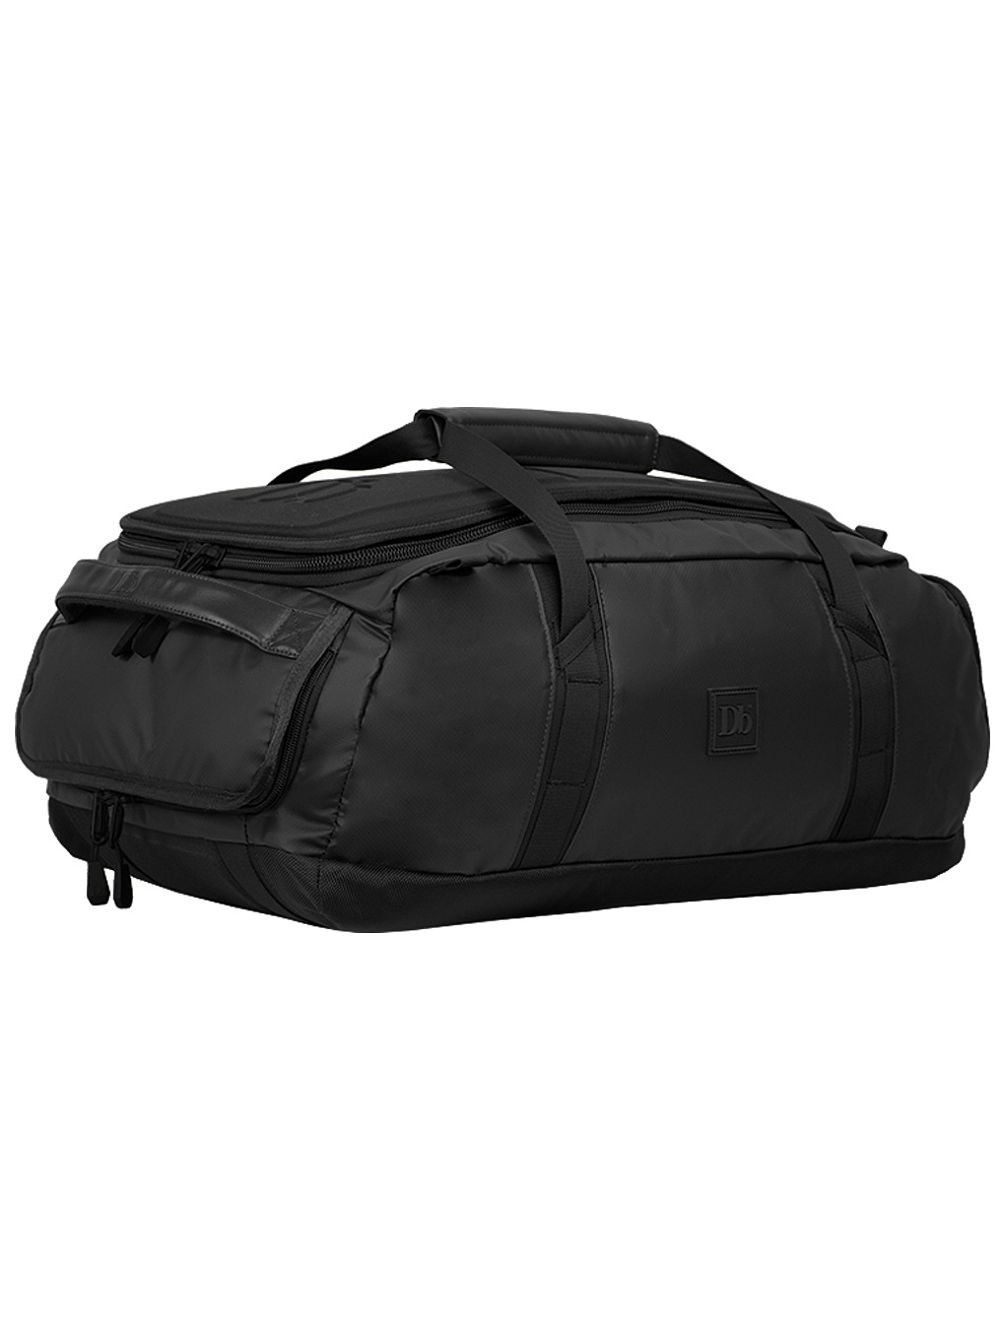 The Carryall 65L Travel Bag